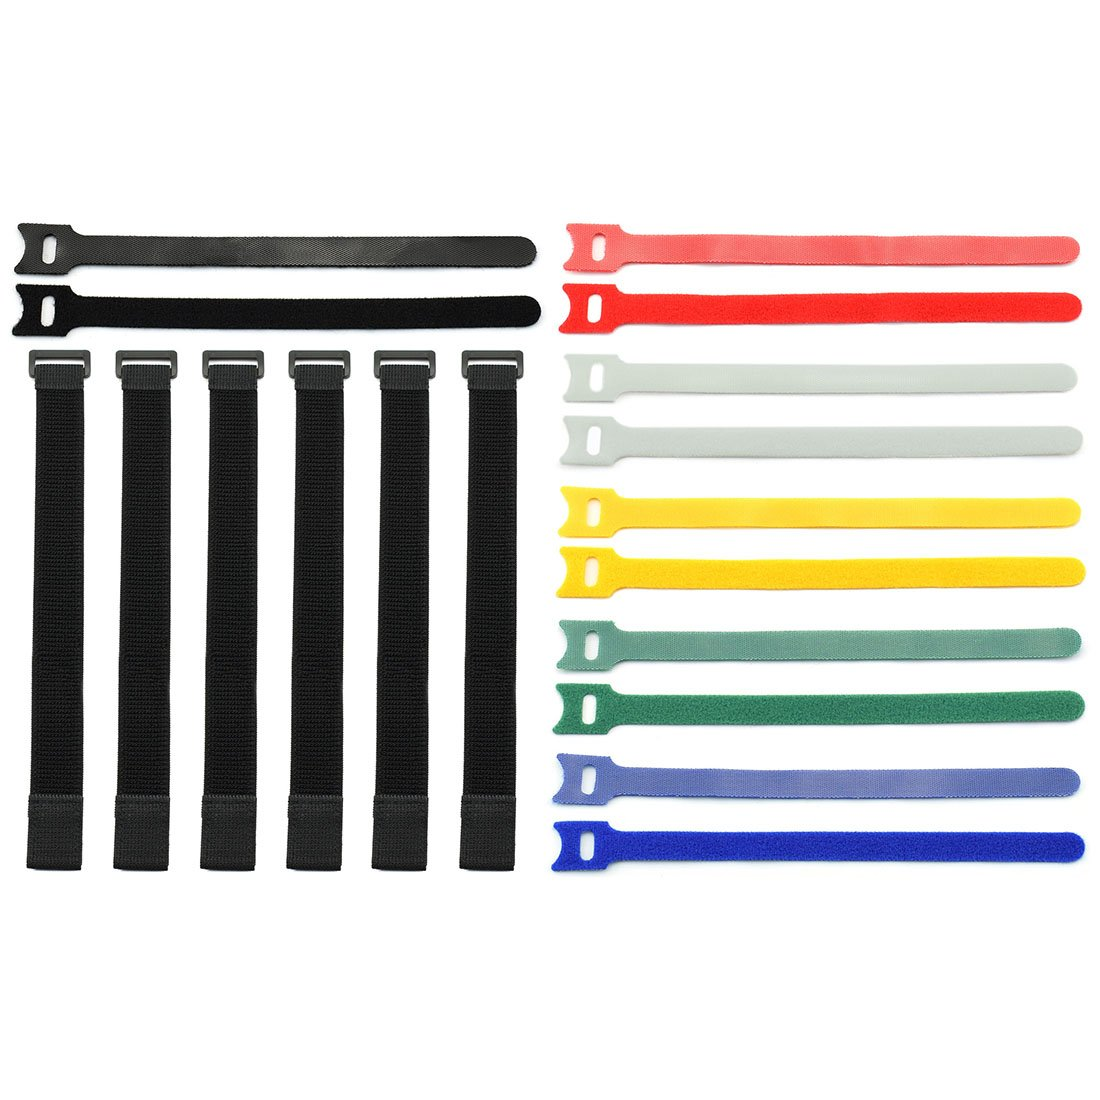 DZS Elec 18pcs Stretchy Velcro Cable Tie Nylon Cable Organizer Kit Adjustable Reusable Stretchable Loop Fastening Straps with Plastic Buckle for Home Office Multicolor Fastening Cable Ties Set